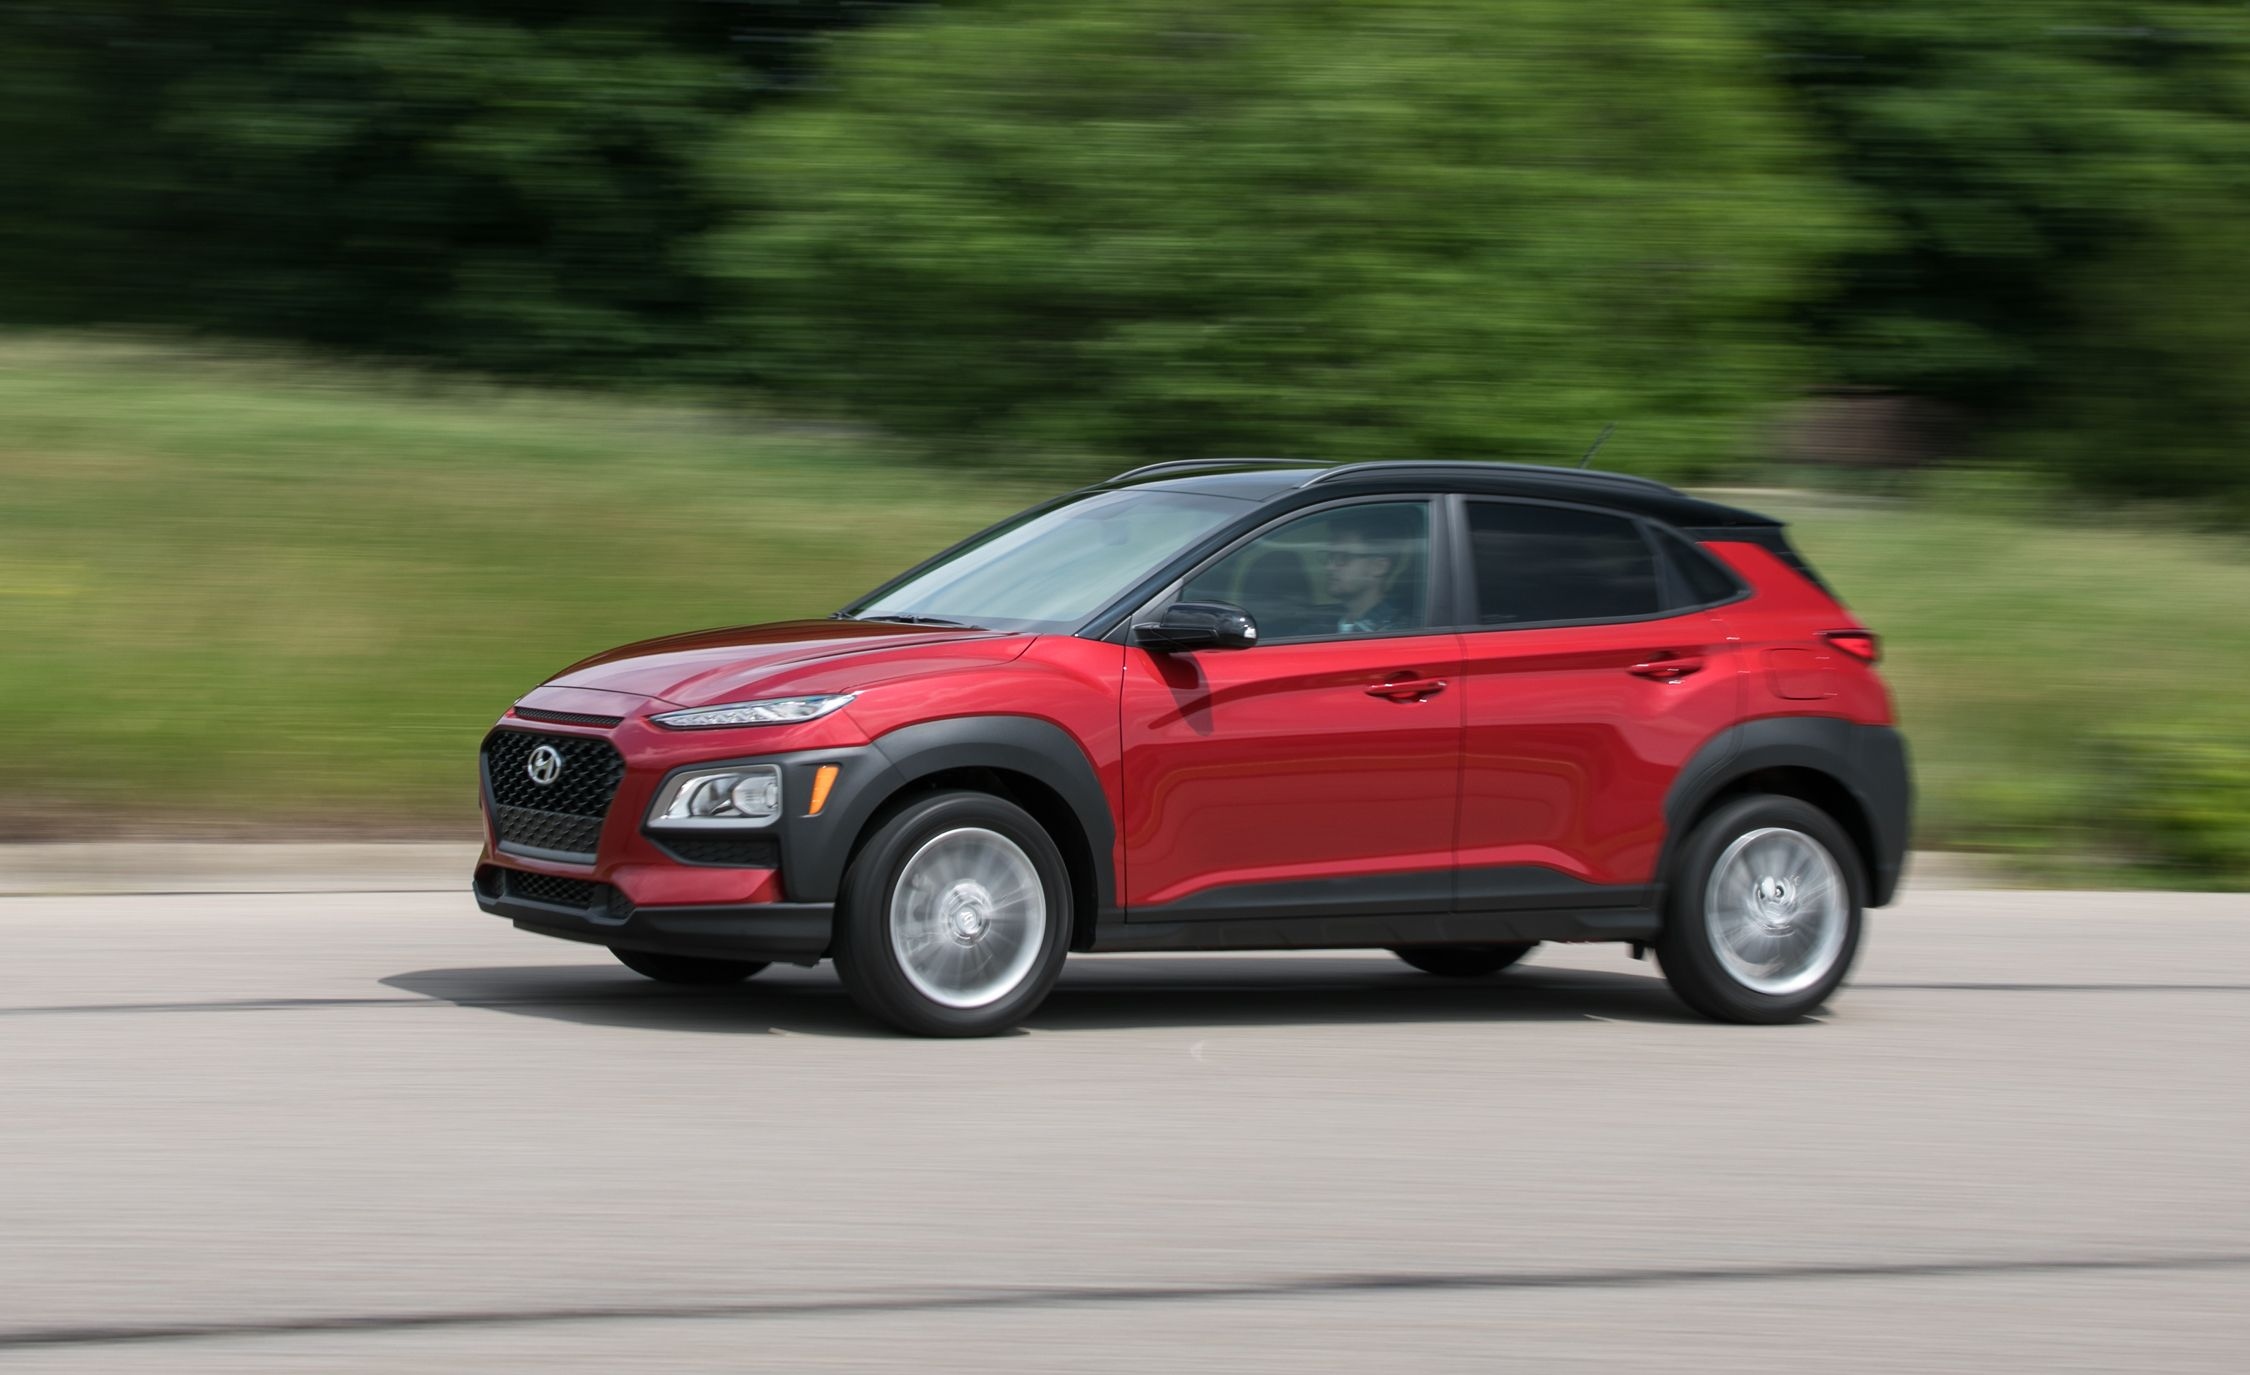 hyundai kona  2019 Hyundai Kona Reviews | Hyundai Kona Price, Photos, and Specs ...